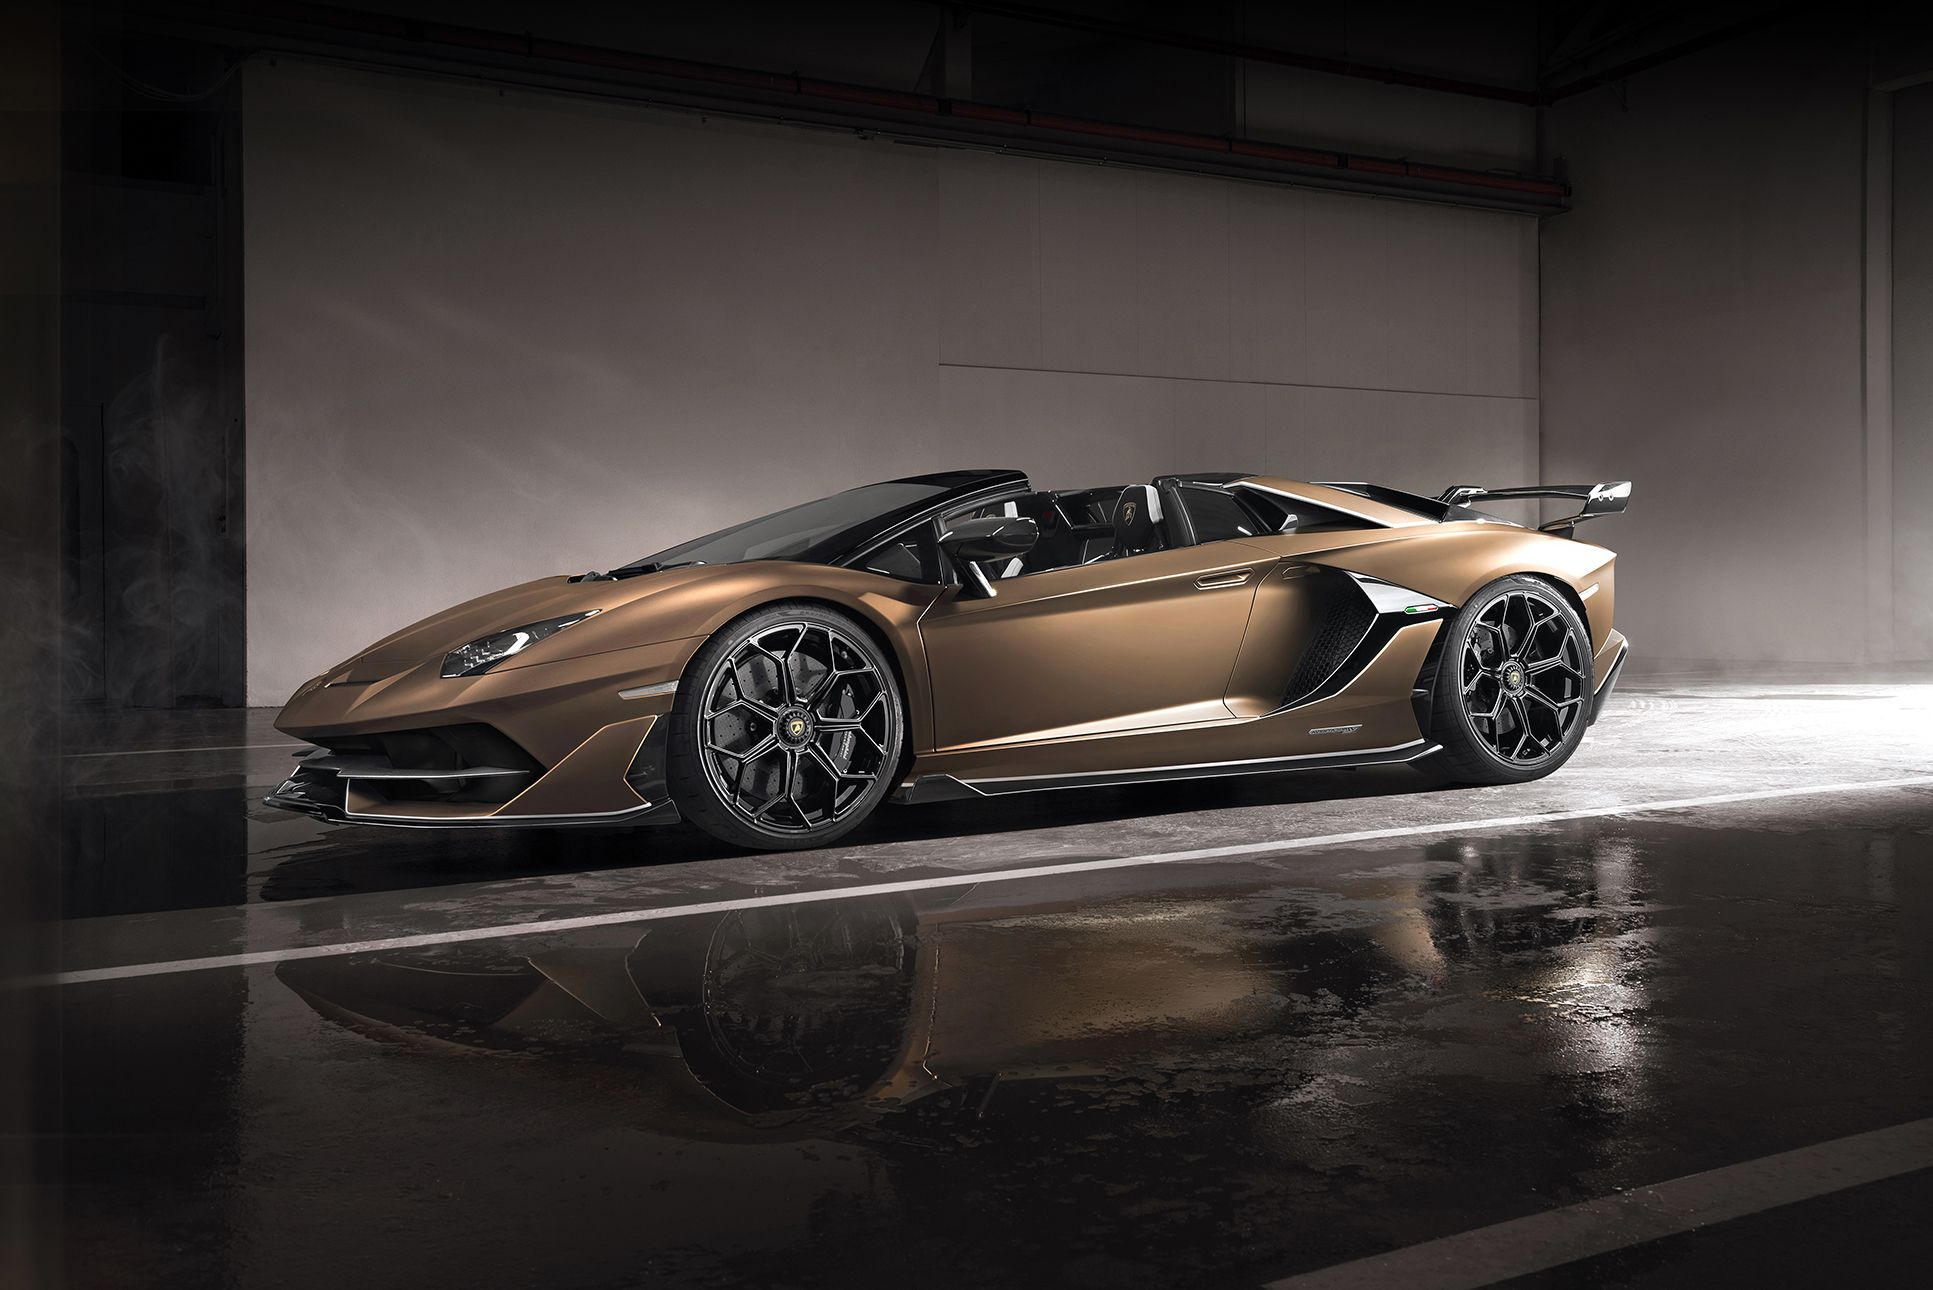 2020 Lamborghini Aventador Svj Roadster Revealed At Geneva 2019